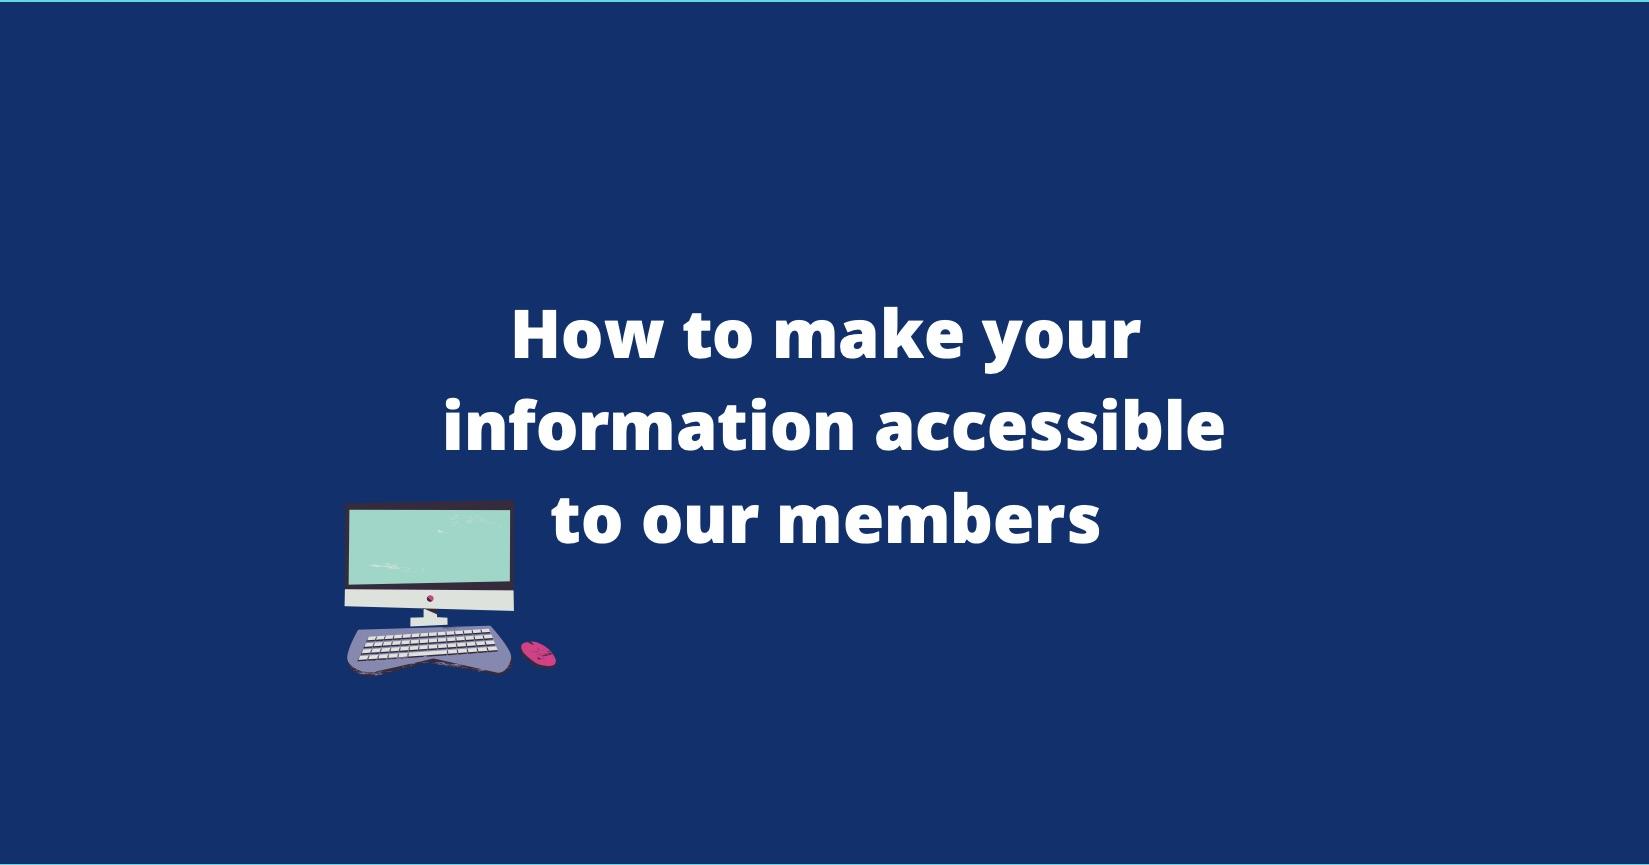 How to make your information accessible to our members. The title of the post is in white writing on a dark blue background. There is a small illustrated photo of a computer on the left hand side of the writing.